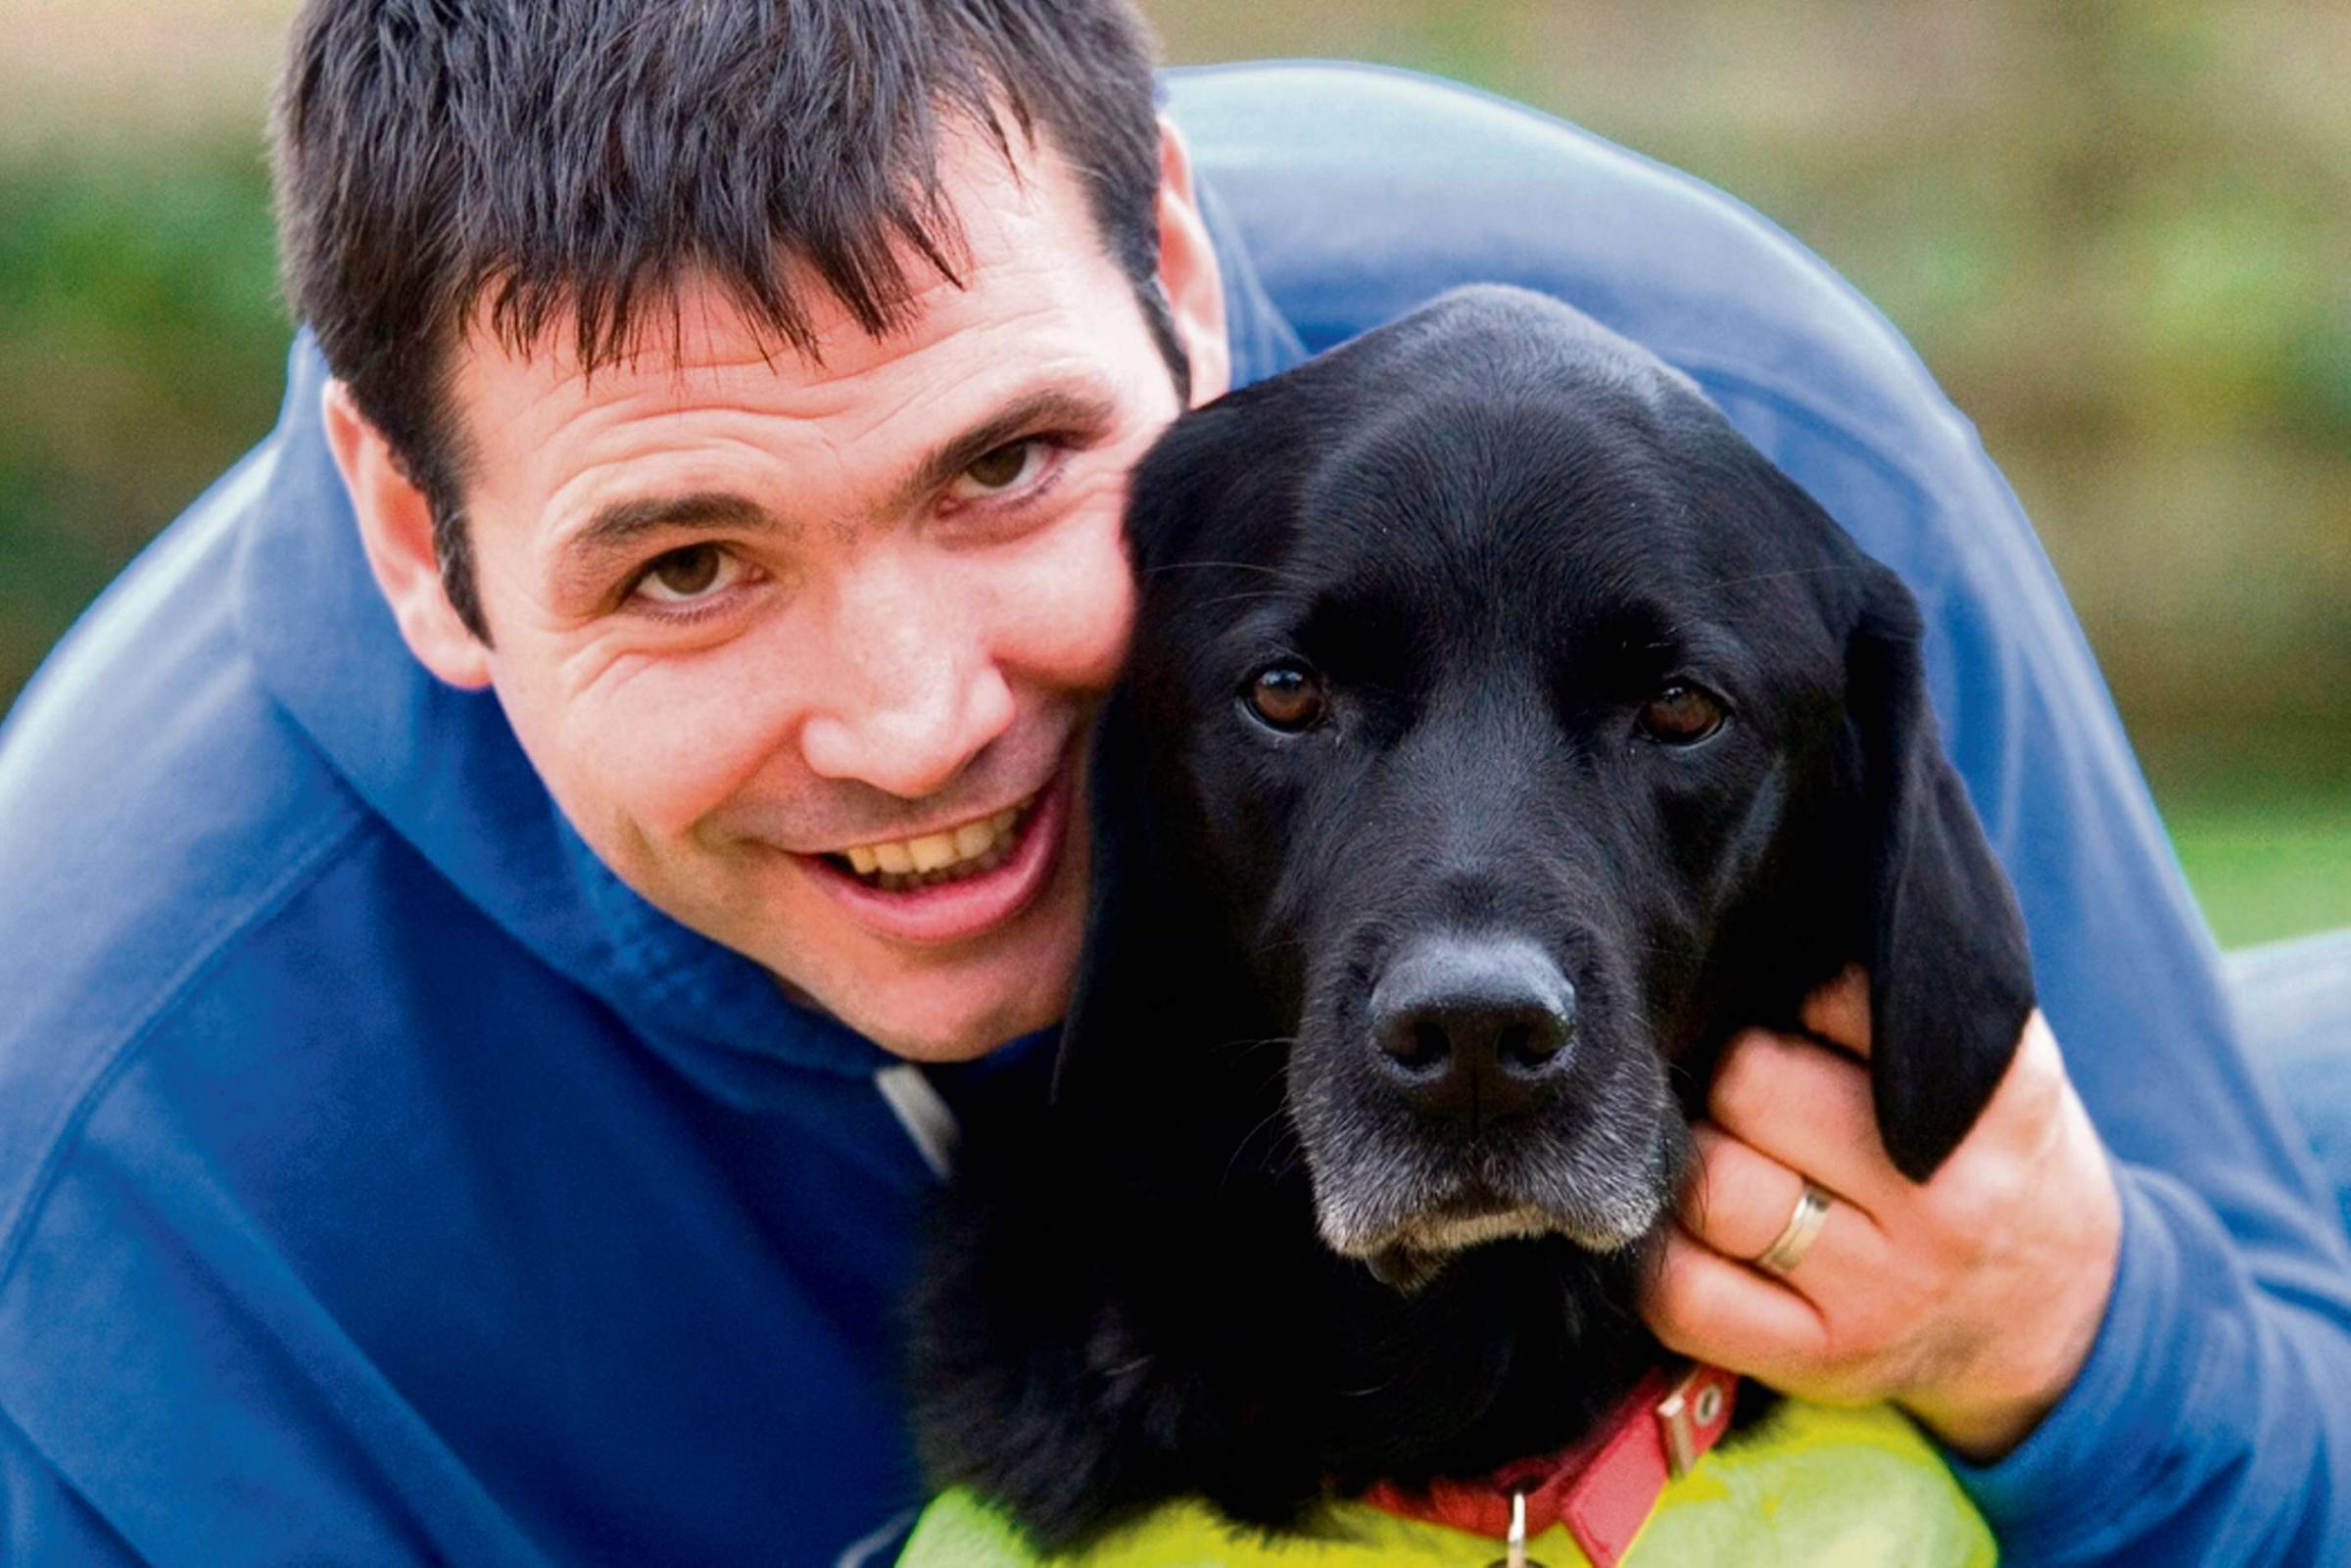 Konrad Galen-Bisping of Talley and his guide dog Radley who have made it to the final of Friends for Life in this year's Crufts.